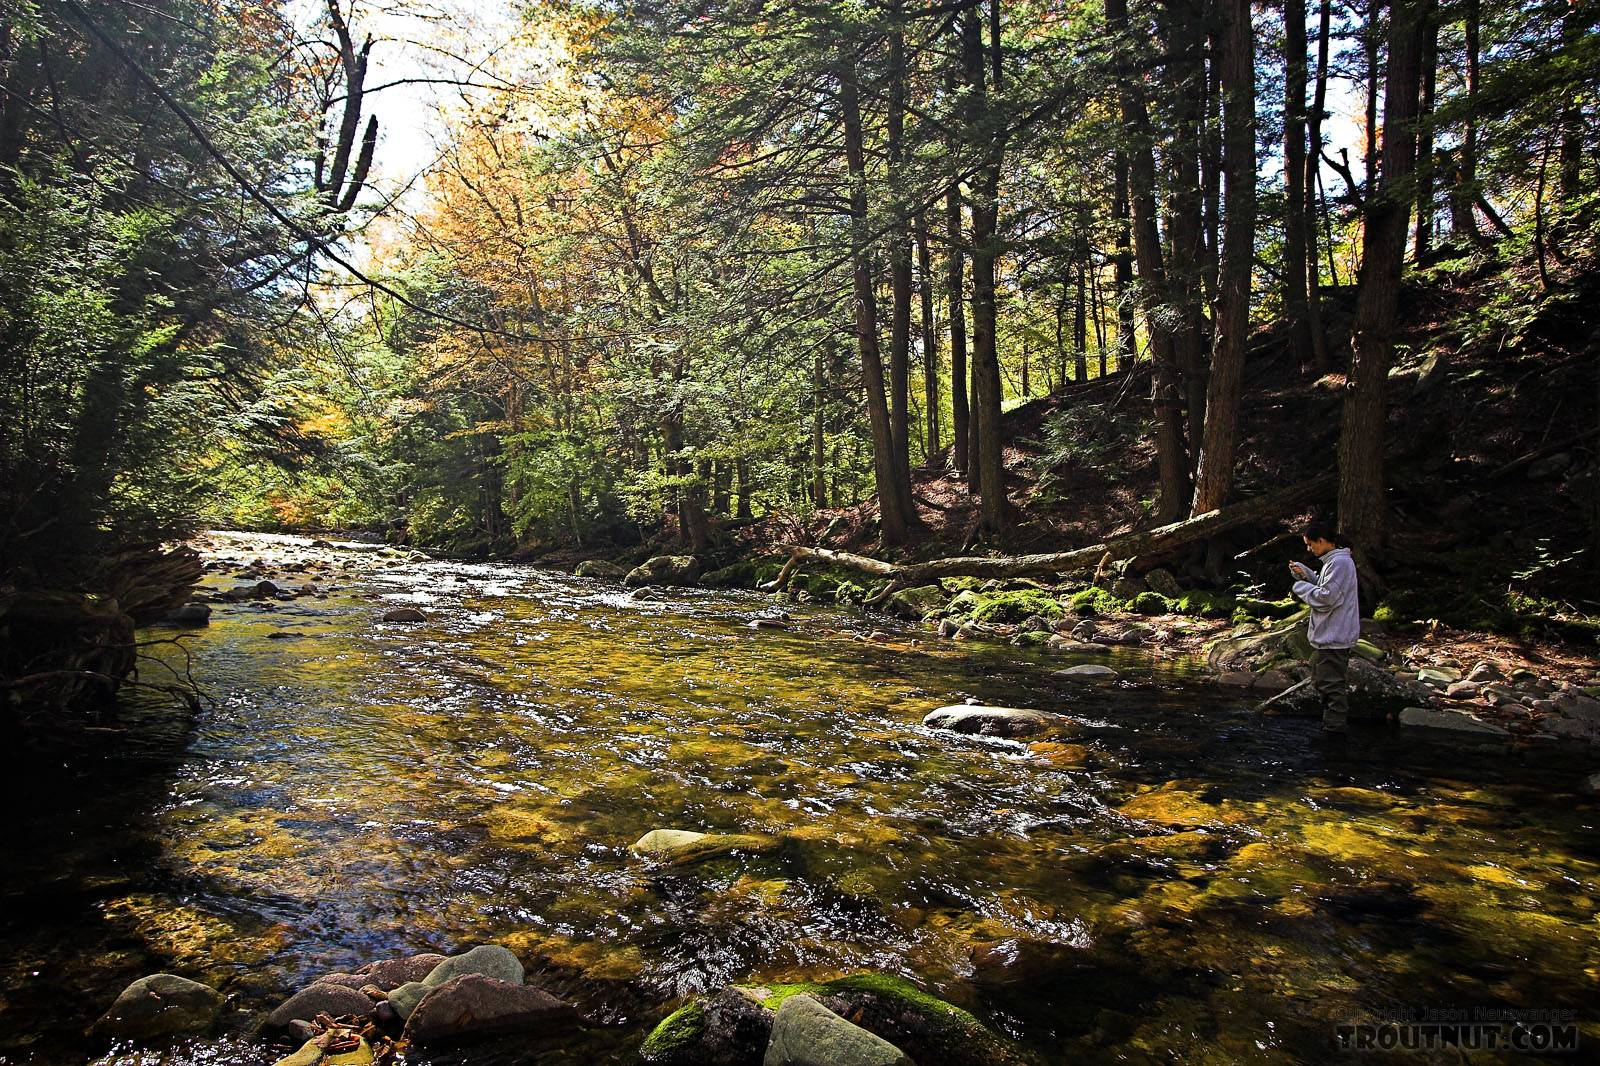 Lena fishes a brookie hole. From the Mystery Creek # 23 in New York.